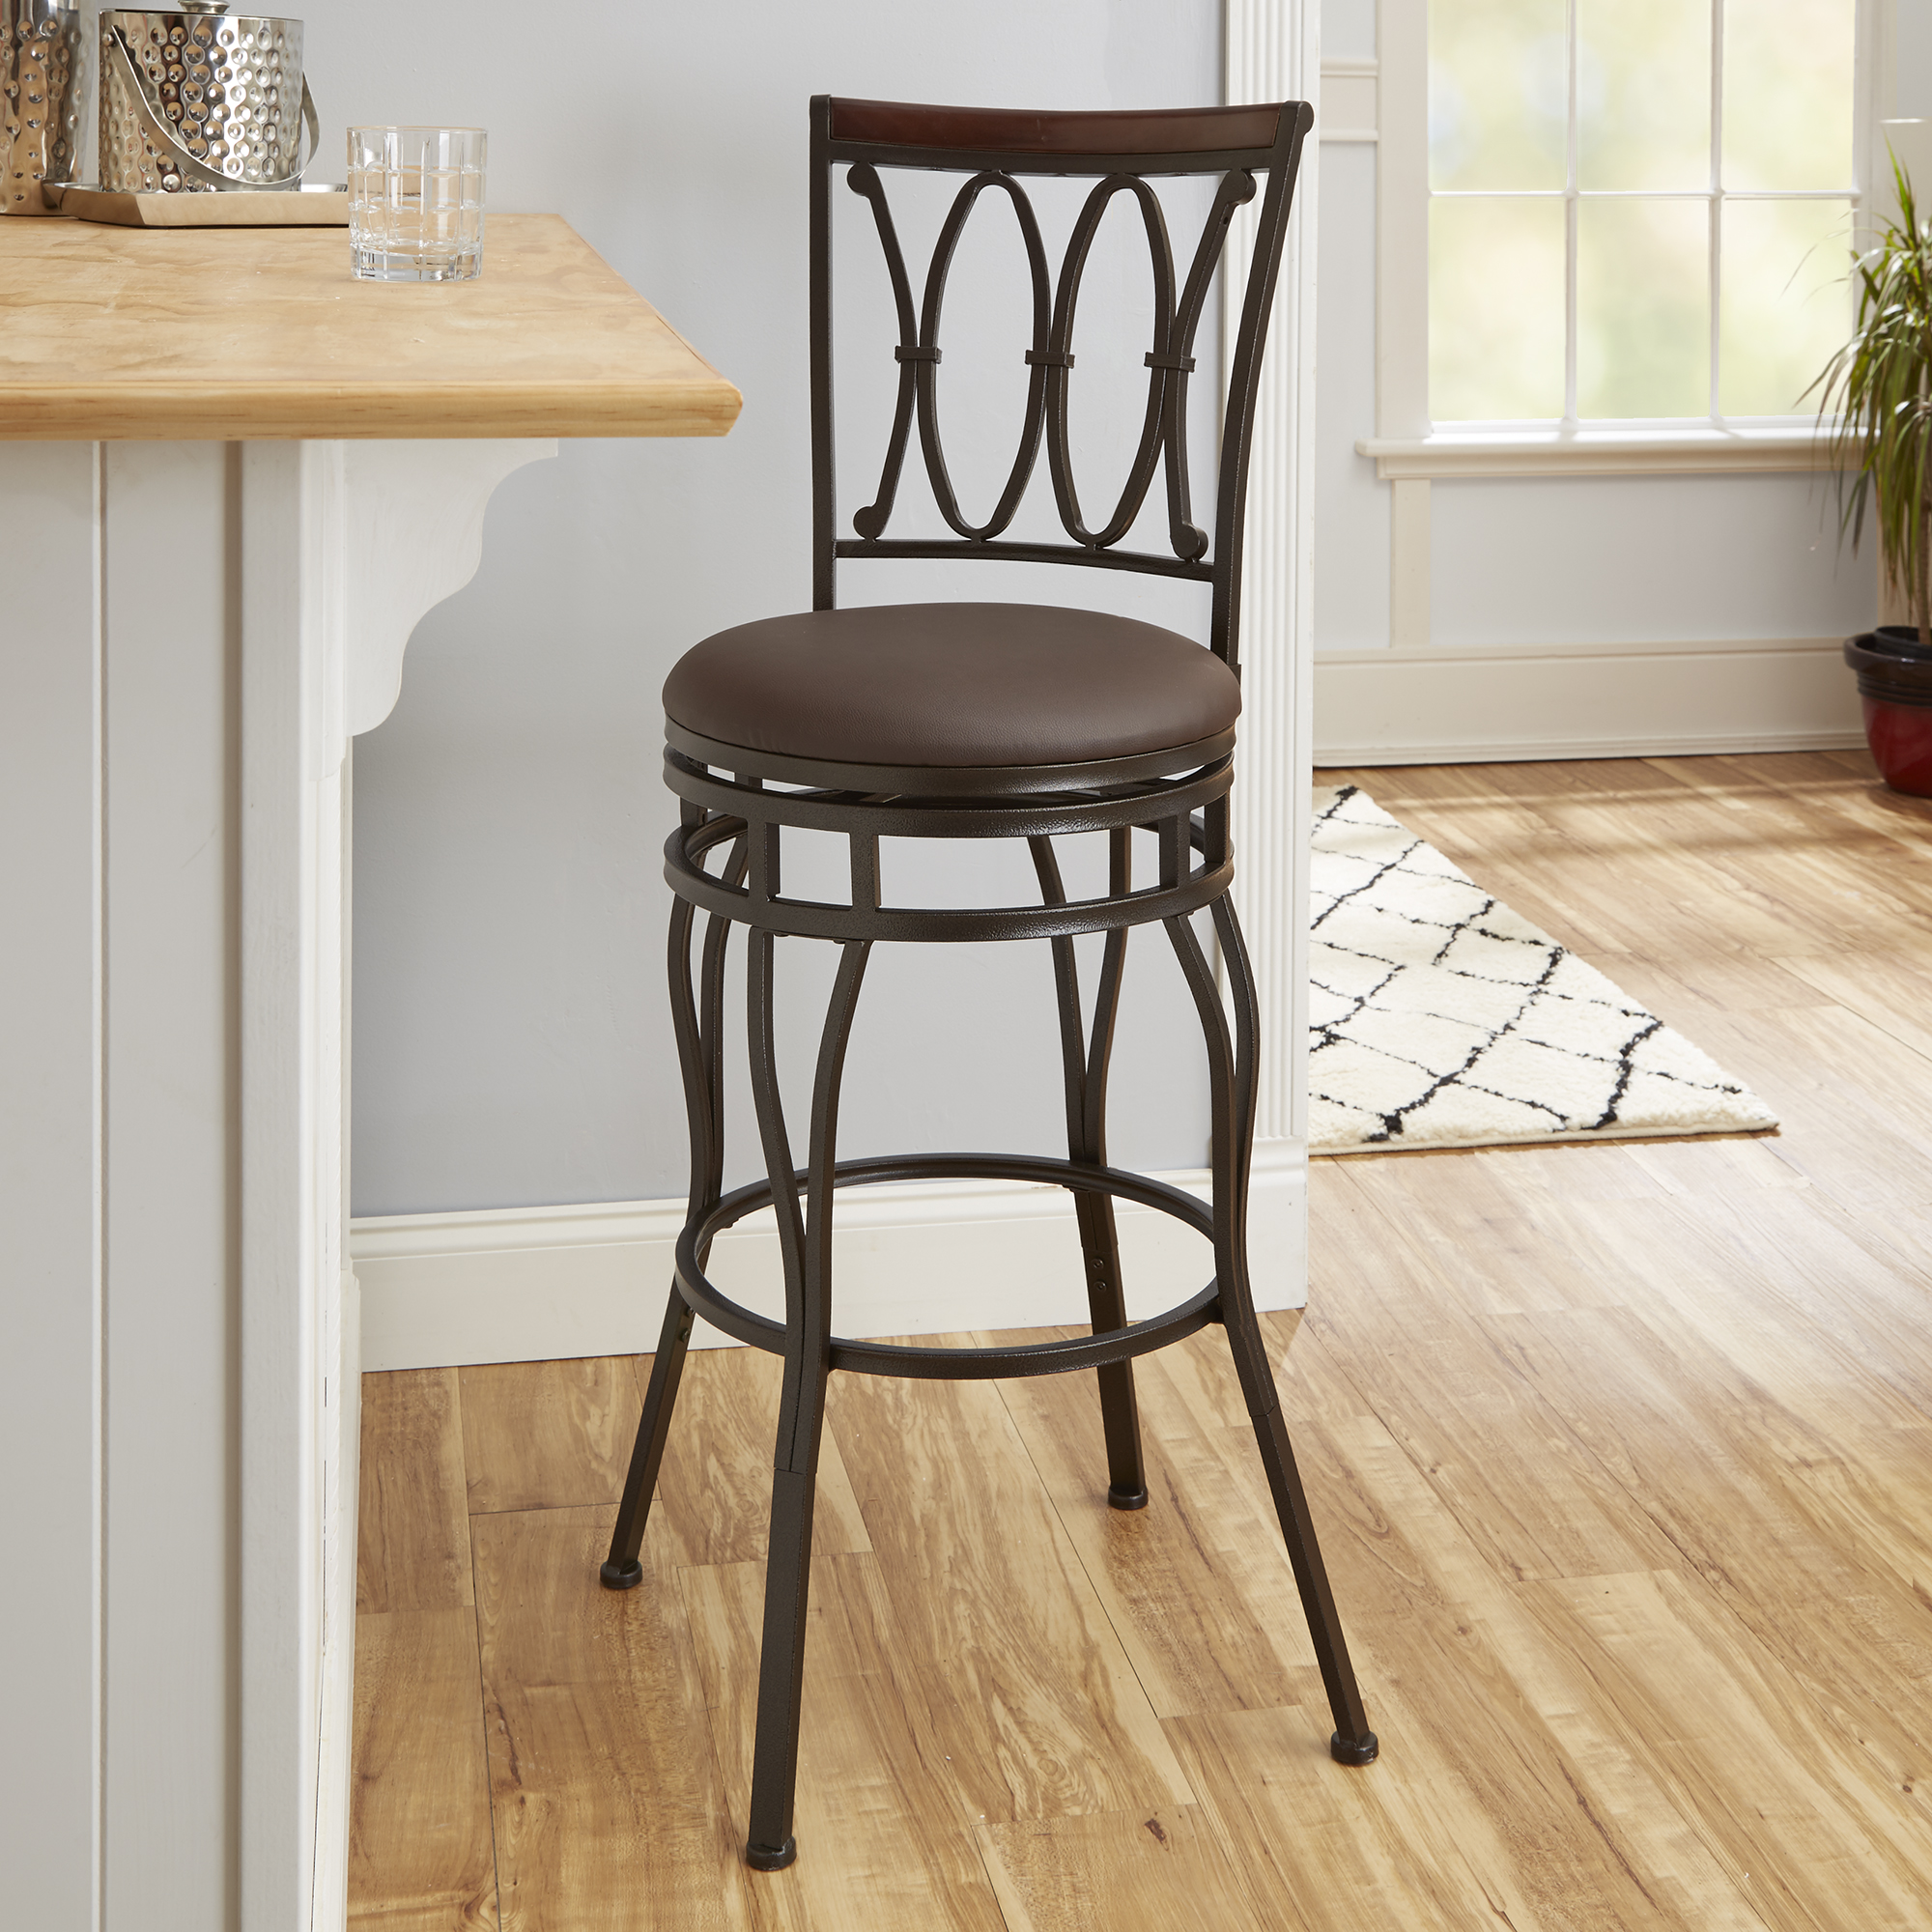 Better Homes and Gardens Adjustable Barstool, Oil Rubbed Bronze